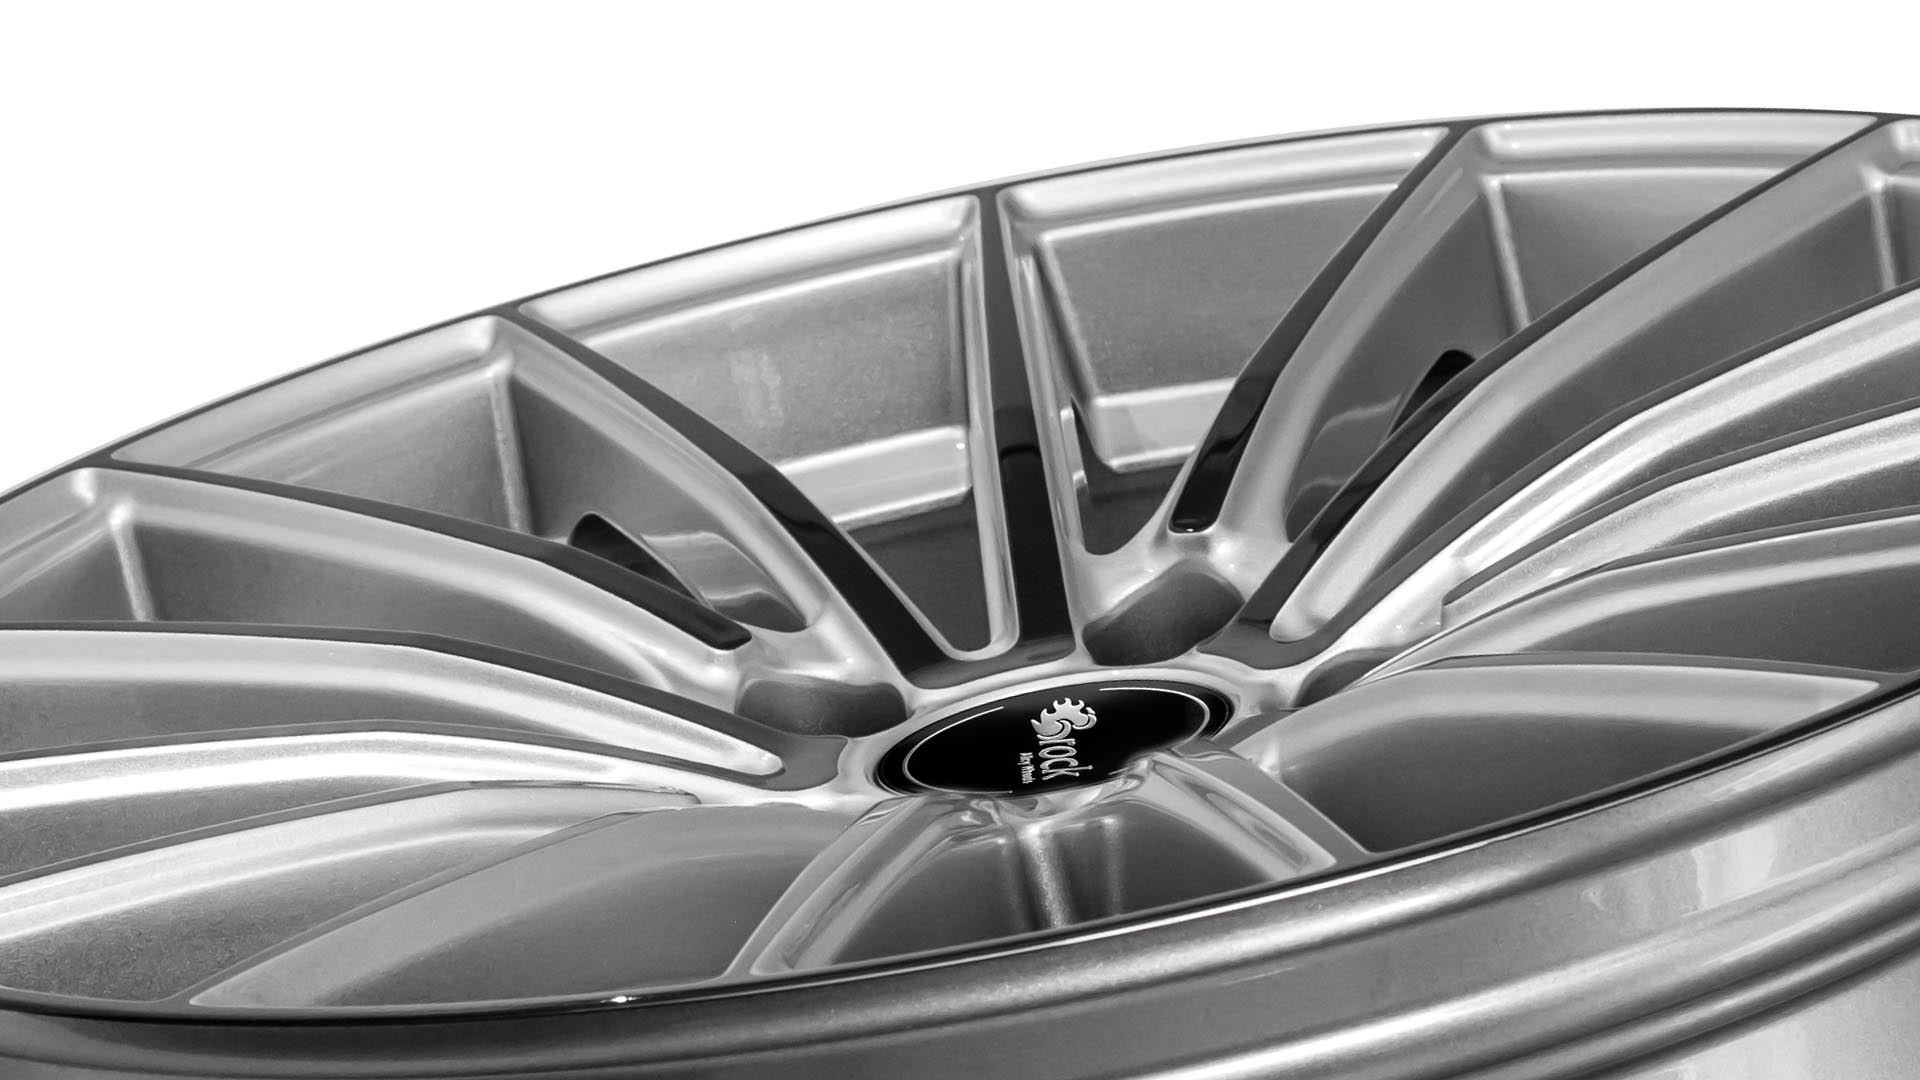 Brock B36 Alloy Wheel in Inch 7 5—17 8 0—18 and 8 5—19 with ABE